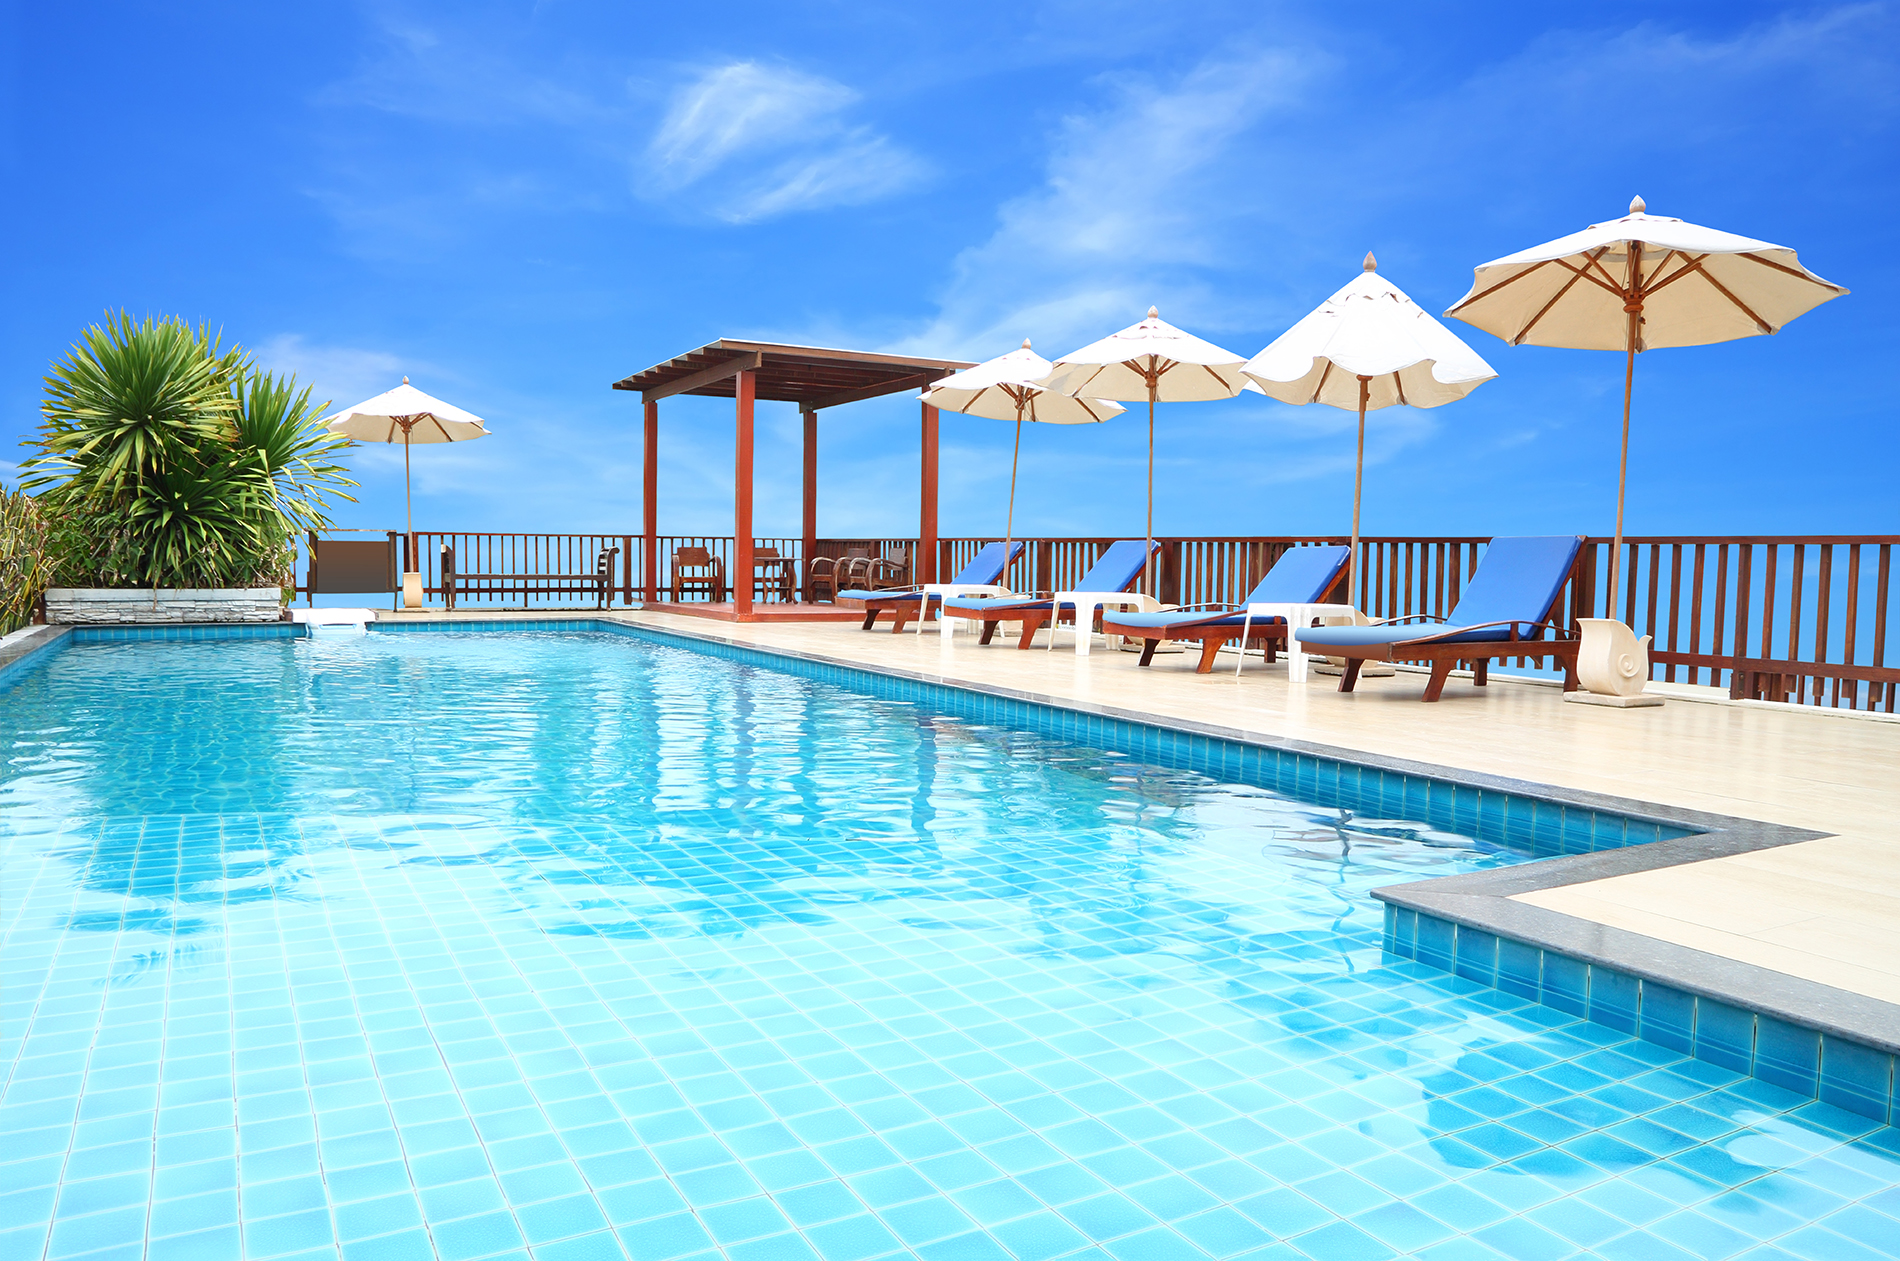 Blue Sky outdoor swimming pool 53780